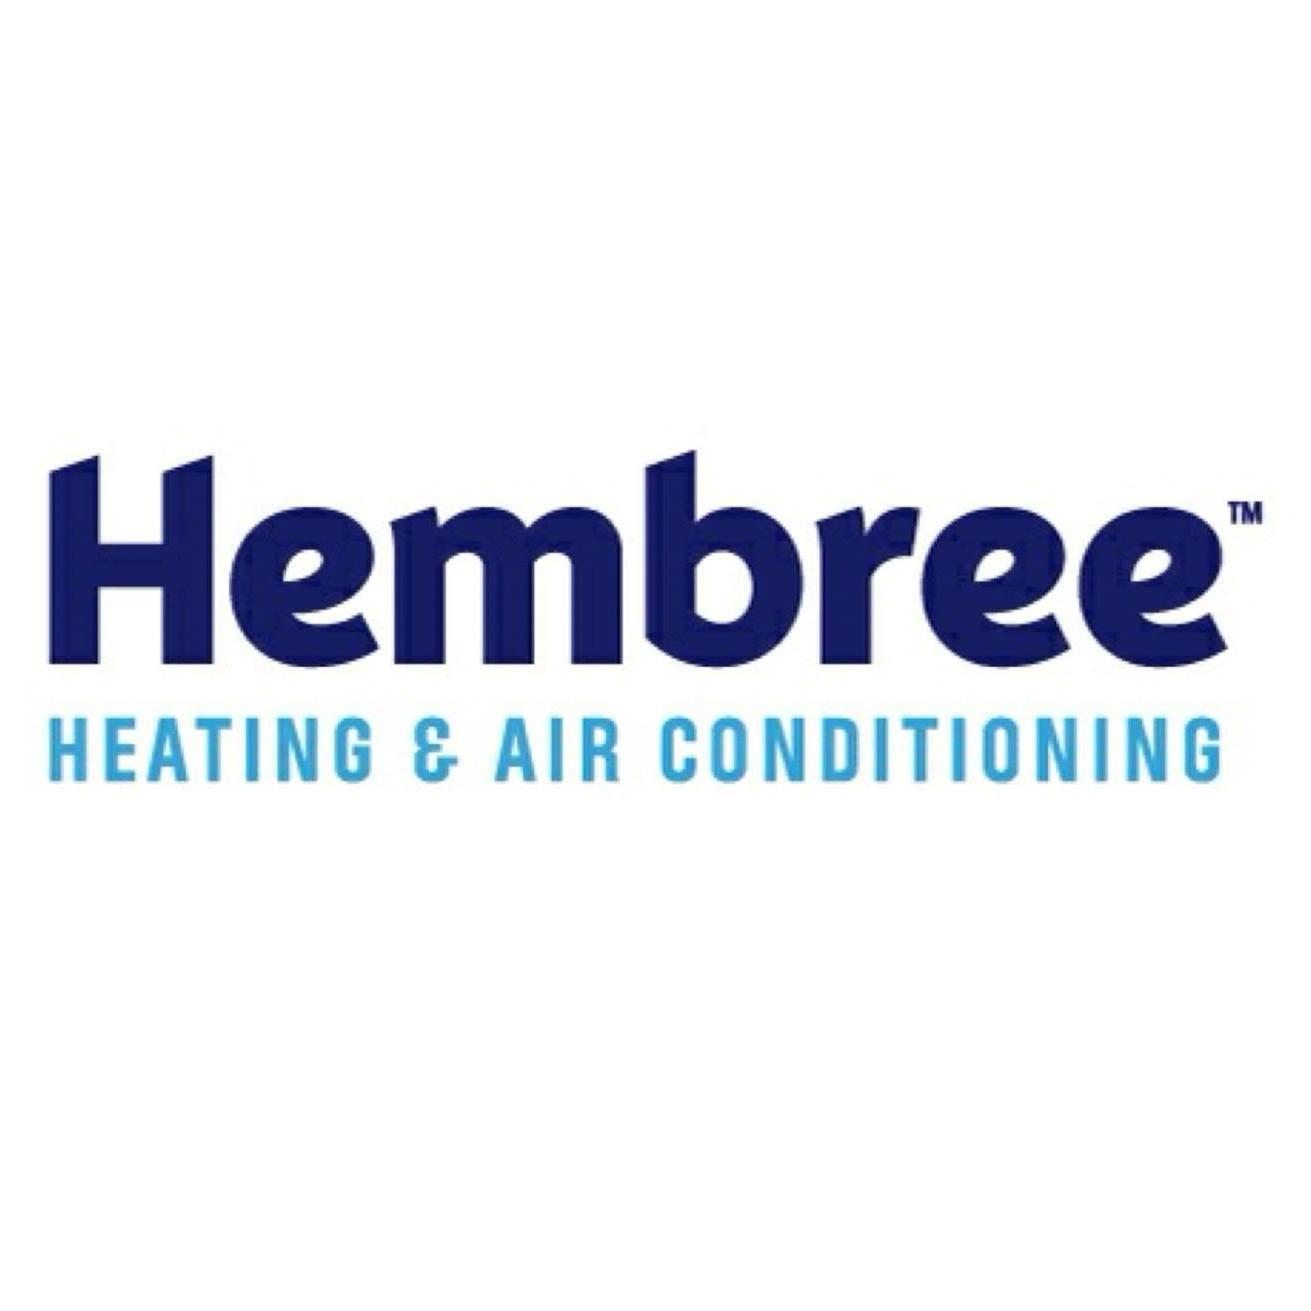 Hembree Heating & Air Conditioning image 0